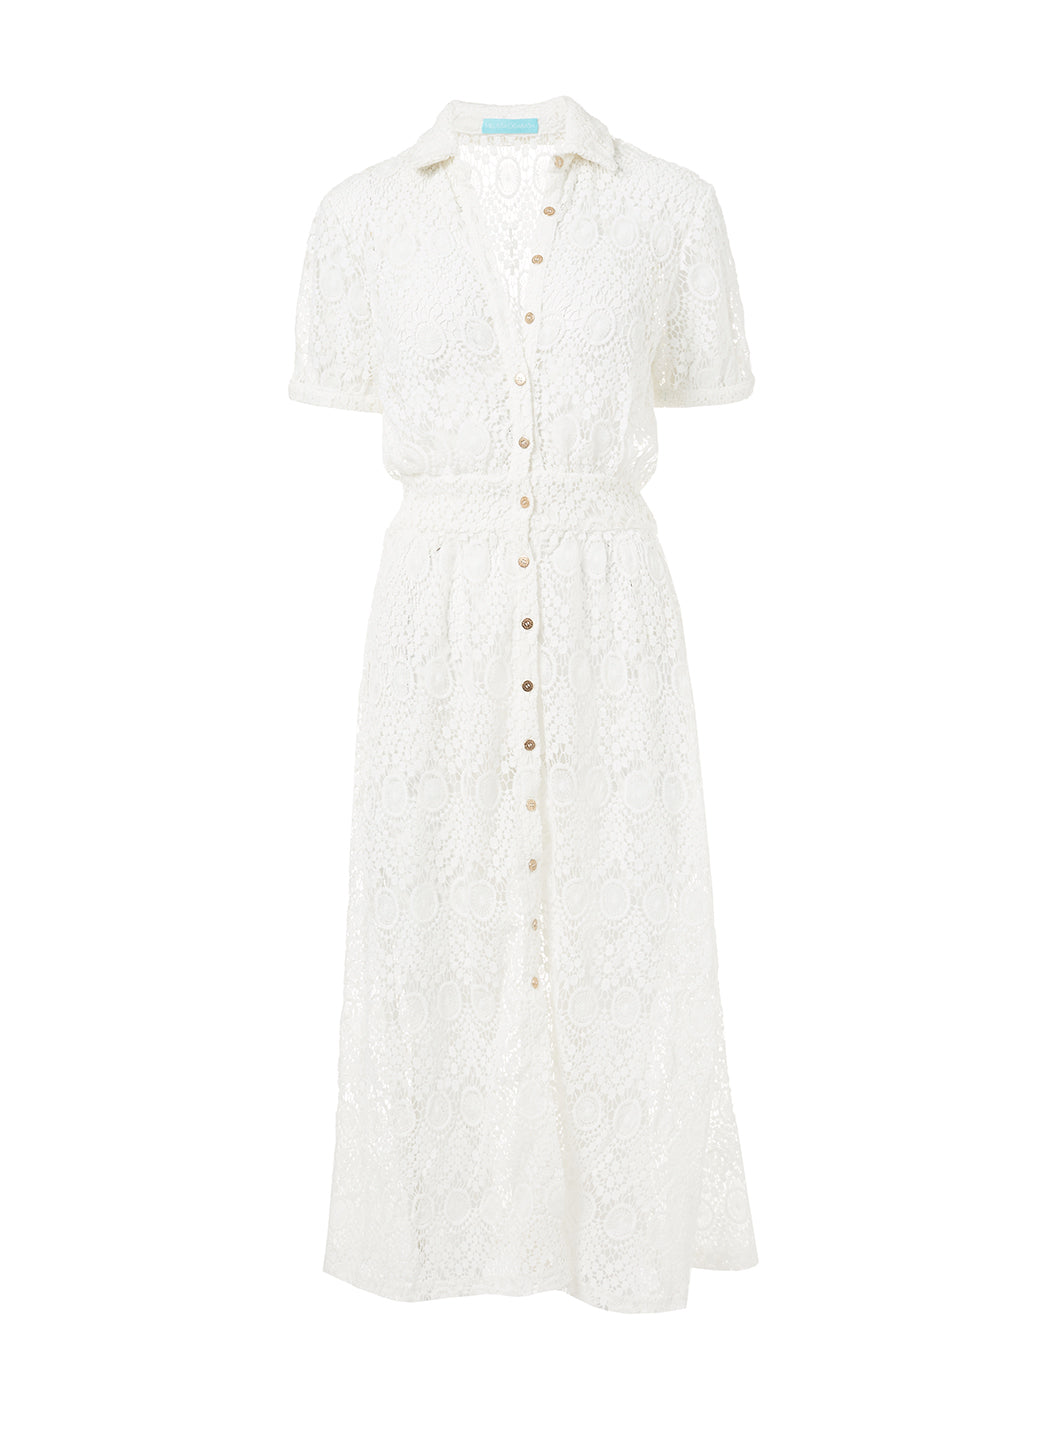 April Cream Lace Midi Button-Down Shirt Dress